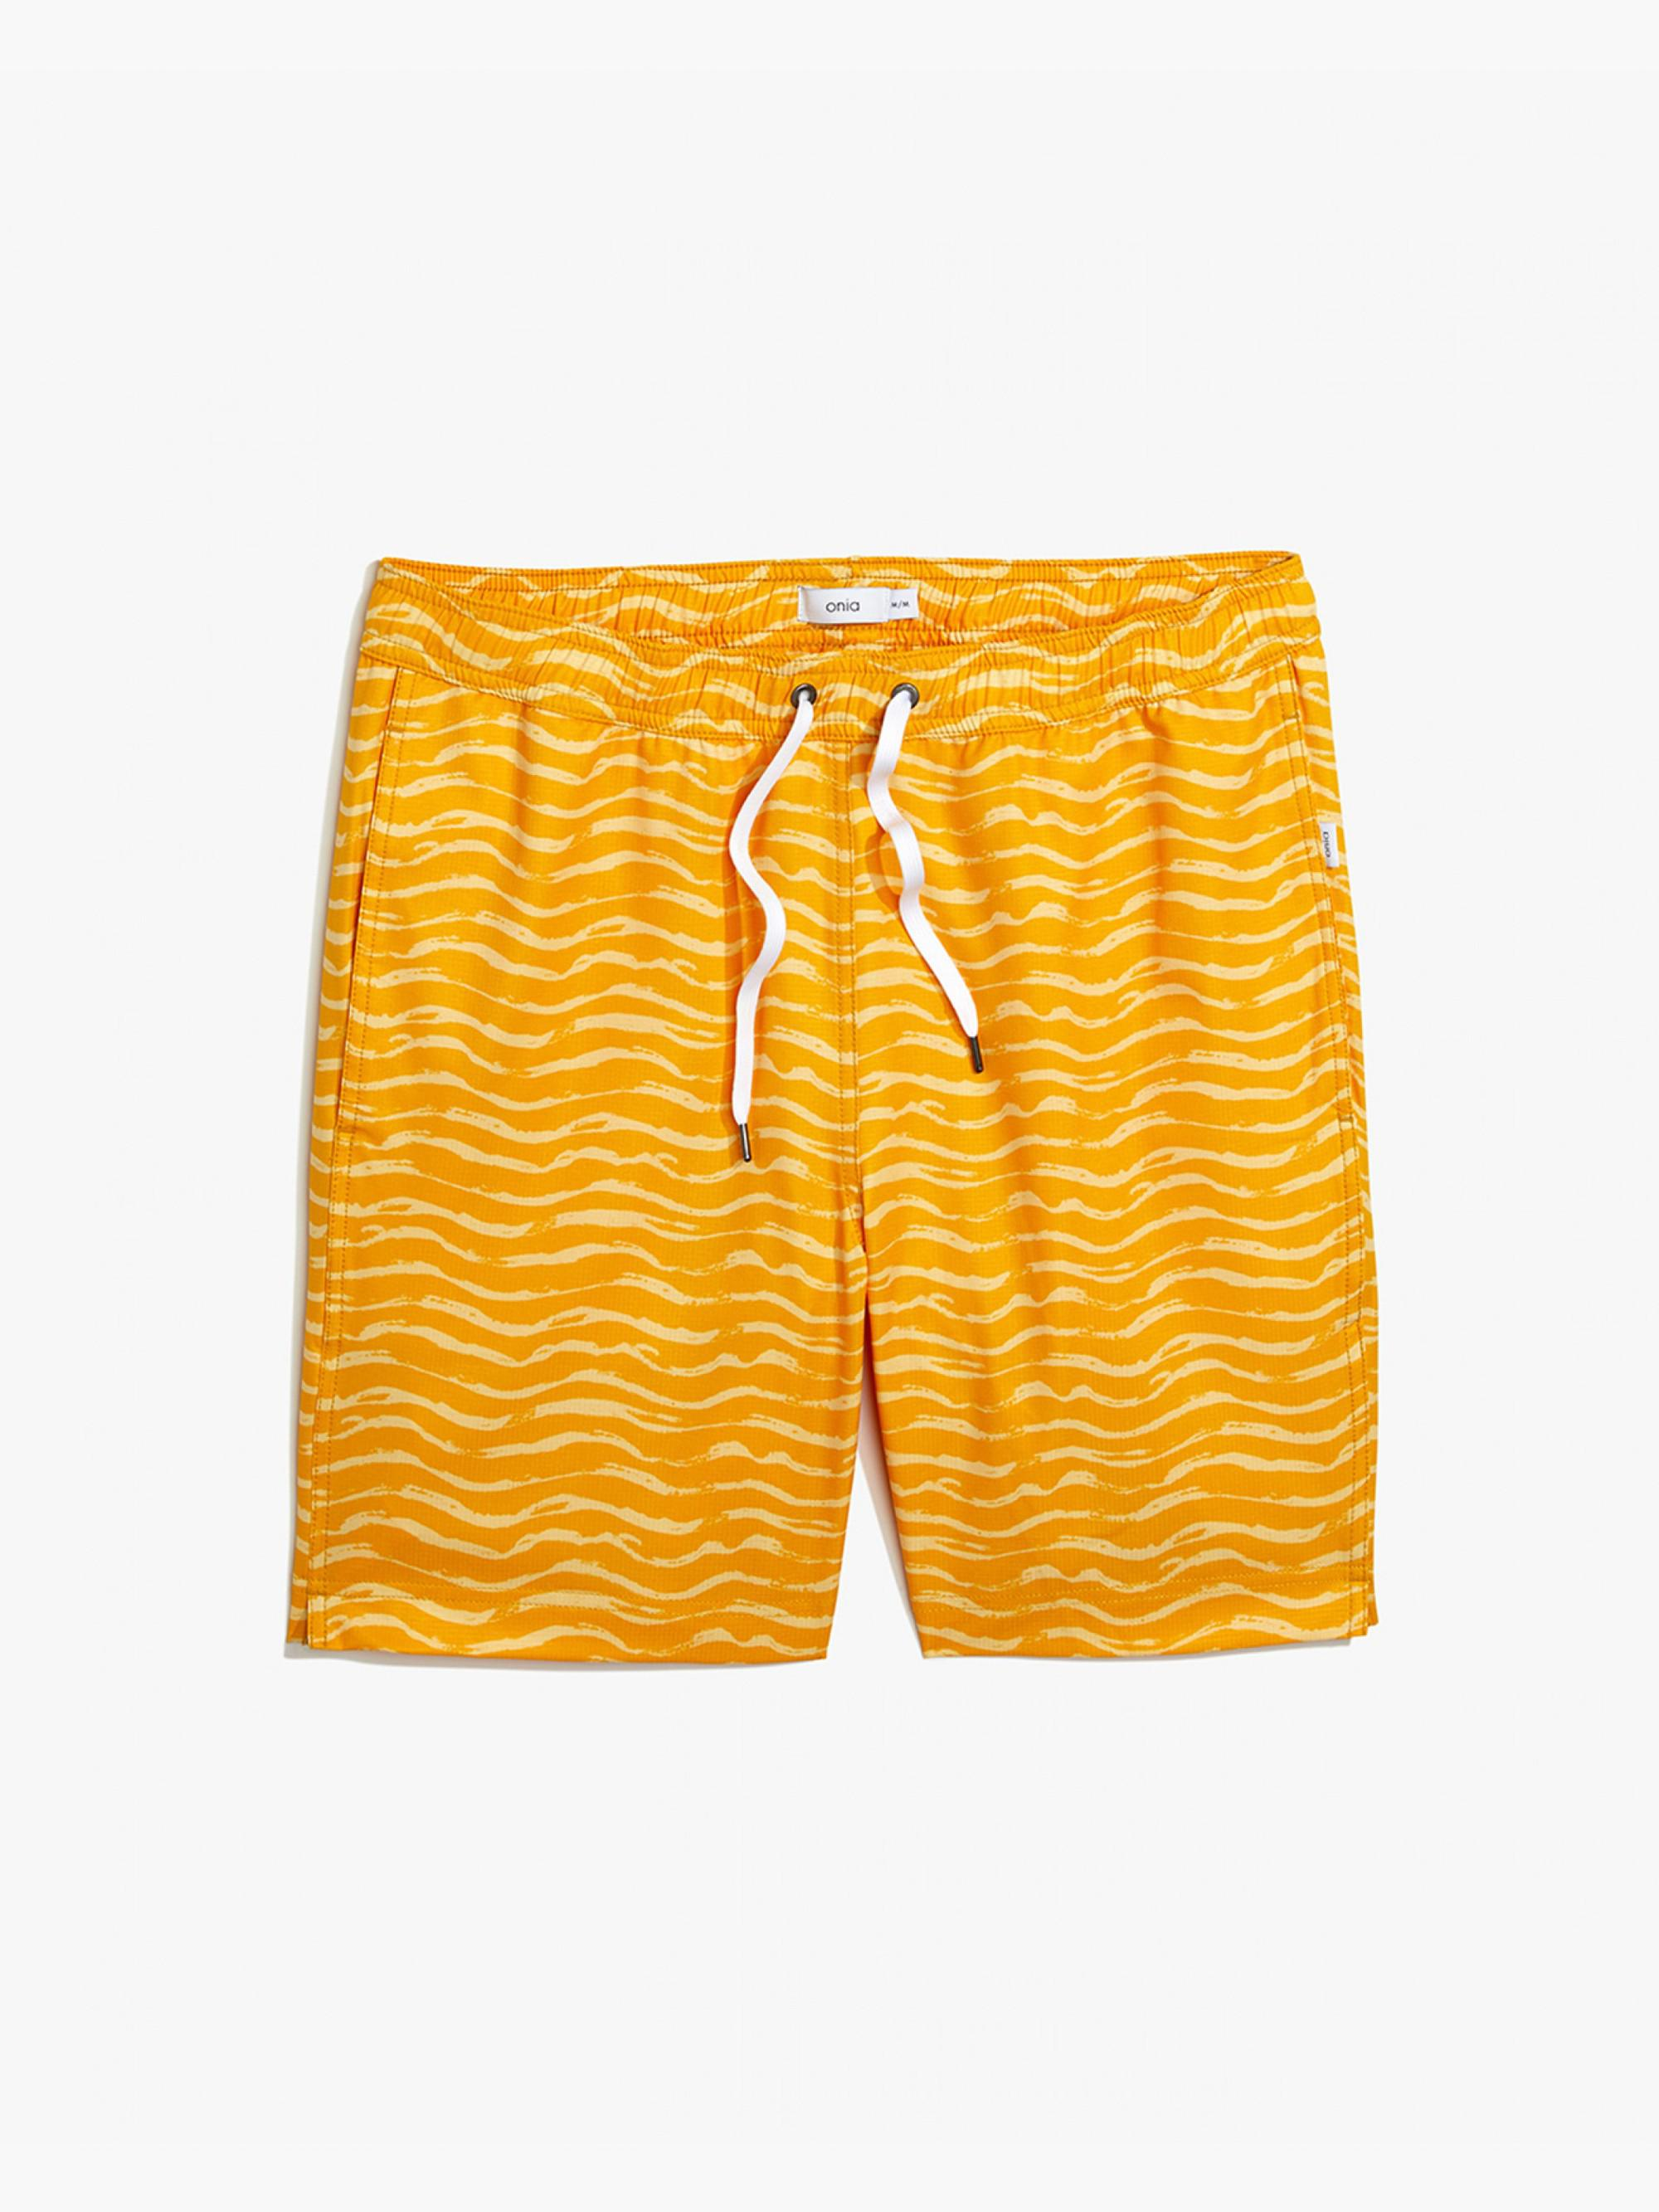 Charles 7 swim trunks - Yellow & Orange Onia